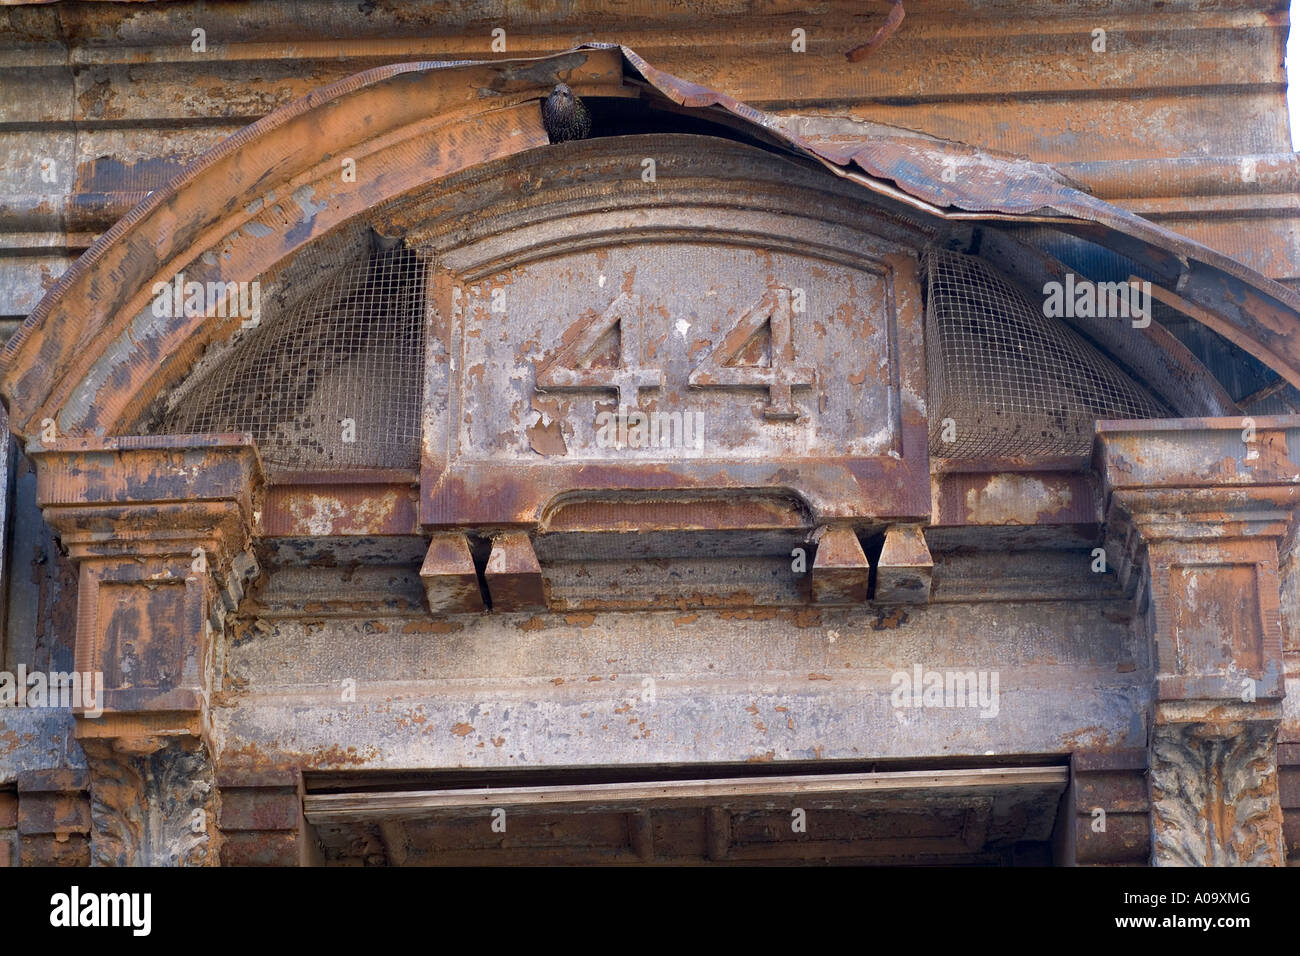 Blighted Industrial building detail with number 44 over doorway - Stock Image